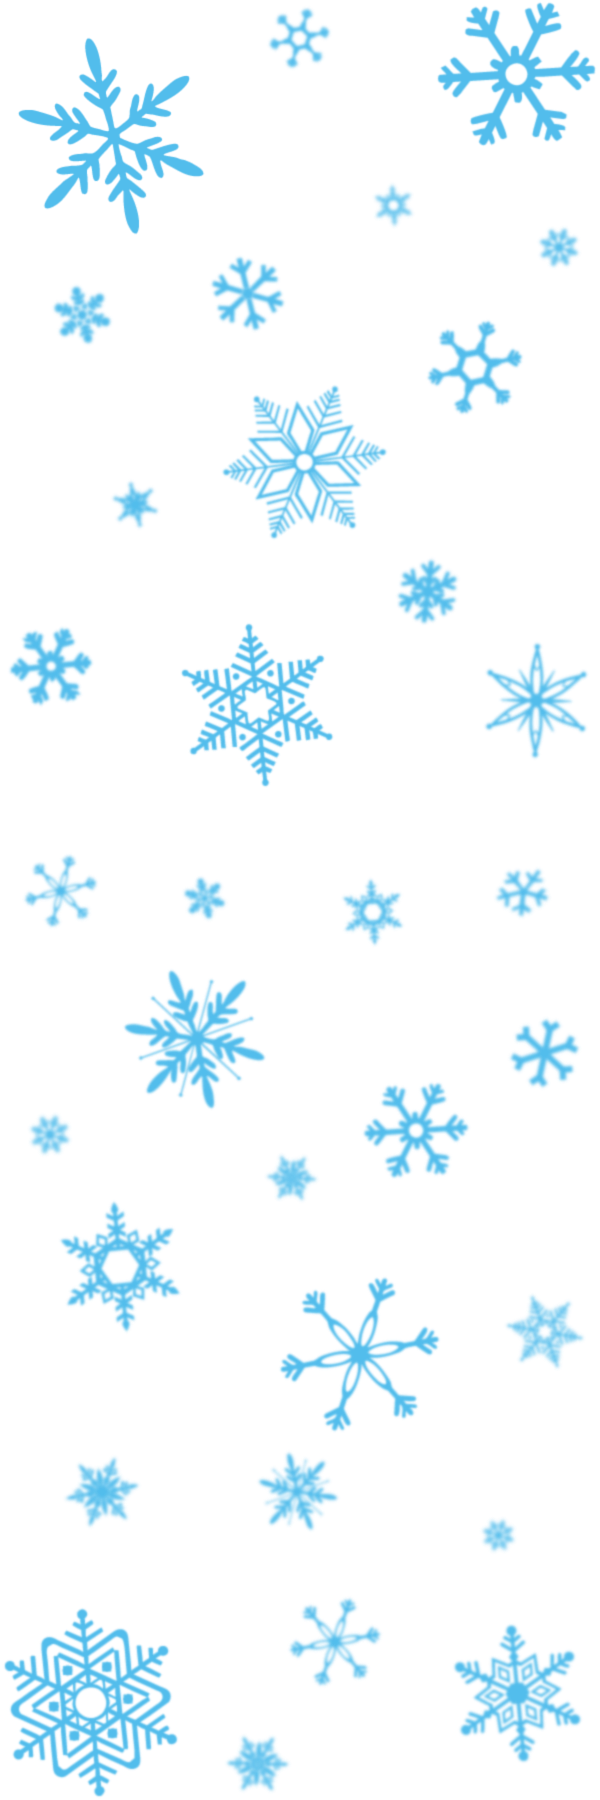 Clipart snowflake group, Clipart snowflake group Transparent